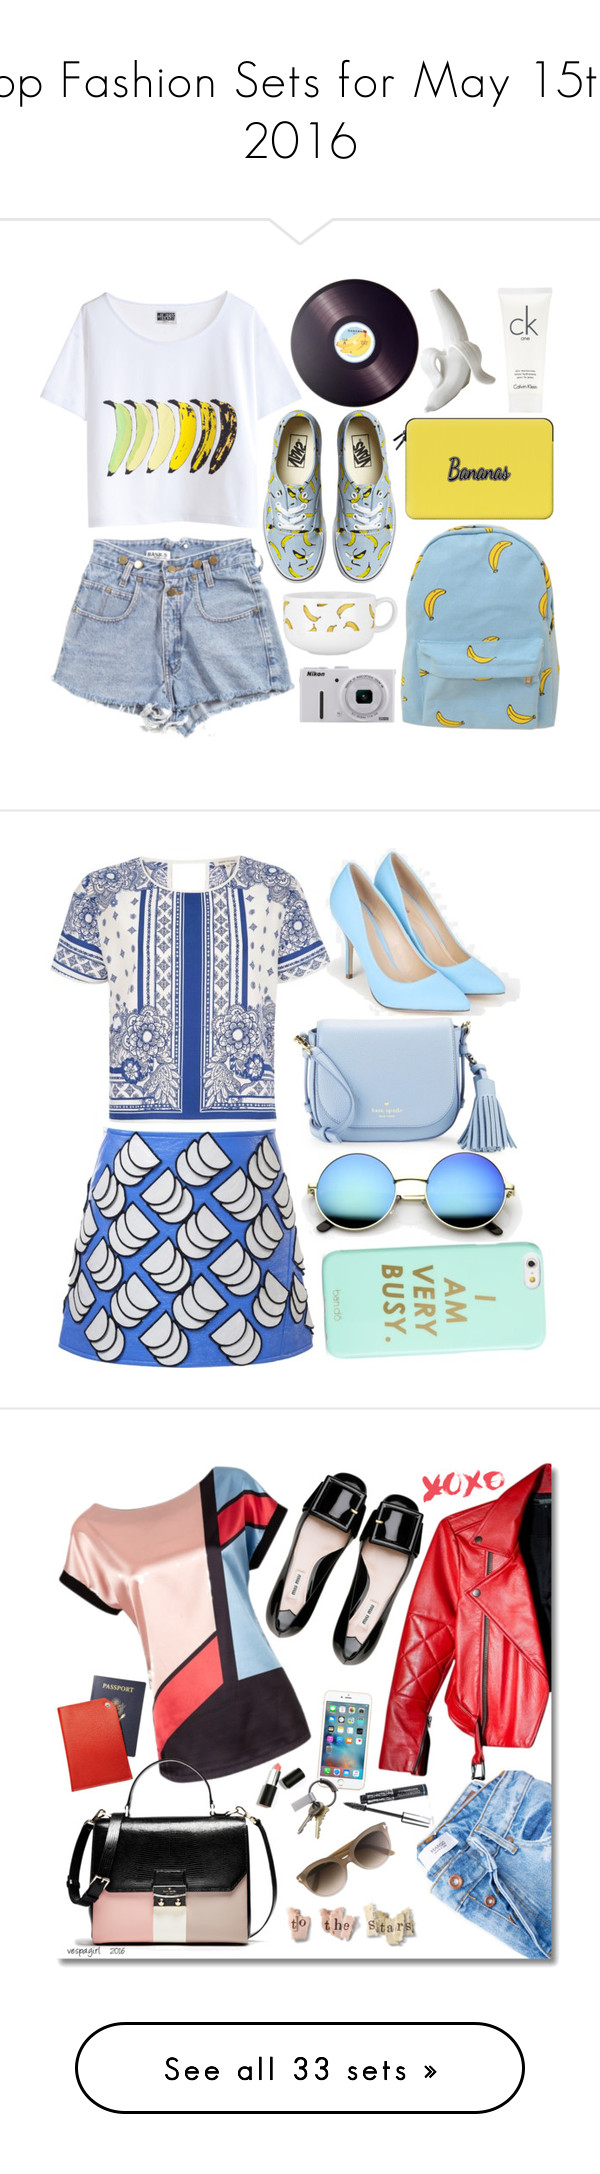 """Top Fashion Sets for May 15th, 2016"" by polyvore ❤ liked on Polyvore featuring Chicnova Fashion, Vans, Casetify, Joseph Joseph, Jonathan Adler, Nikon, Calvin Klein, River Island, Courrèges and JustFab"